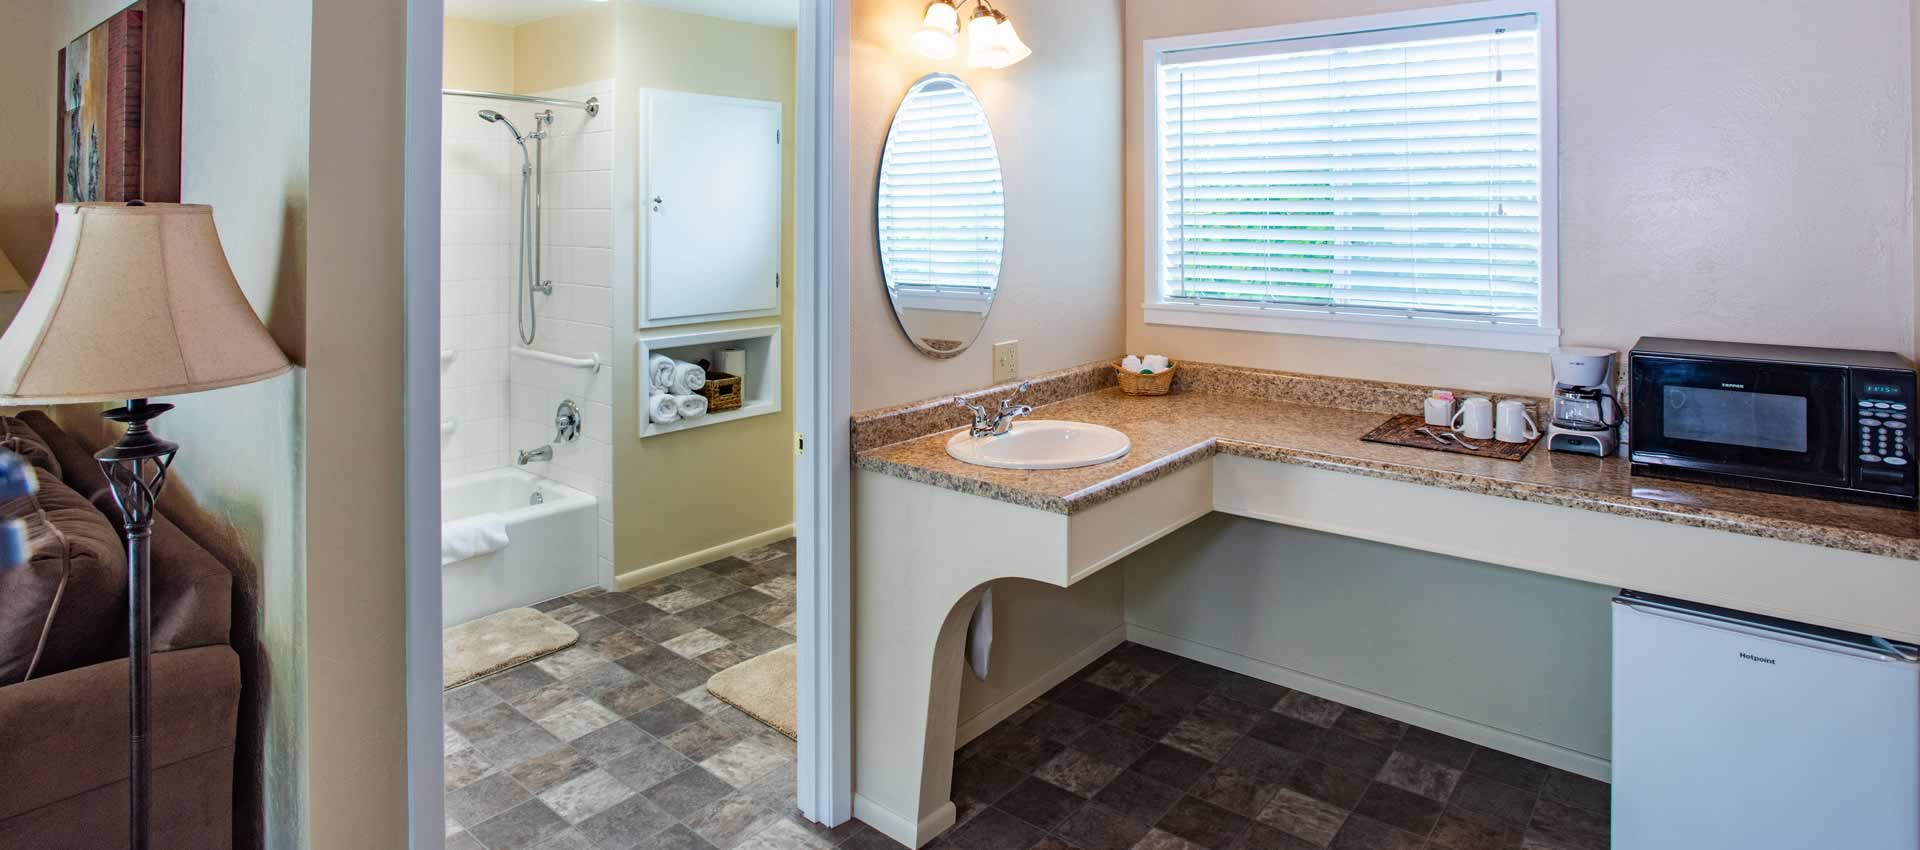 Redwood Suites- ada room kitchen with coffee maker and microwave